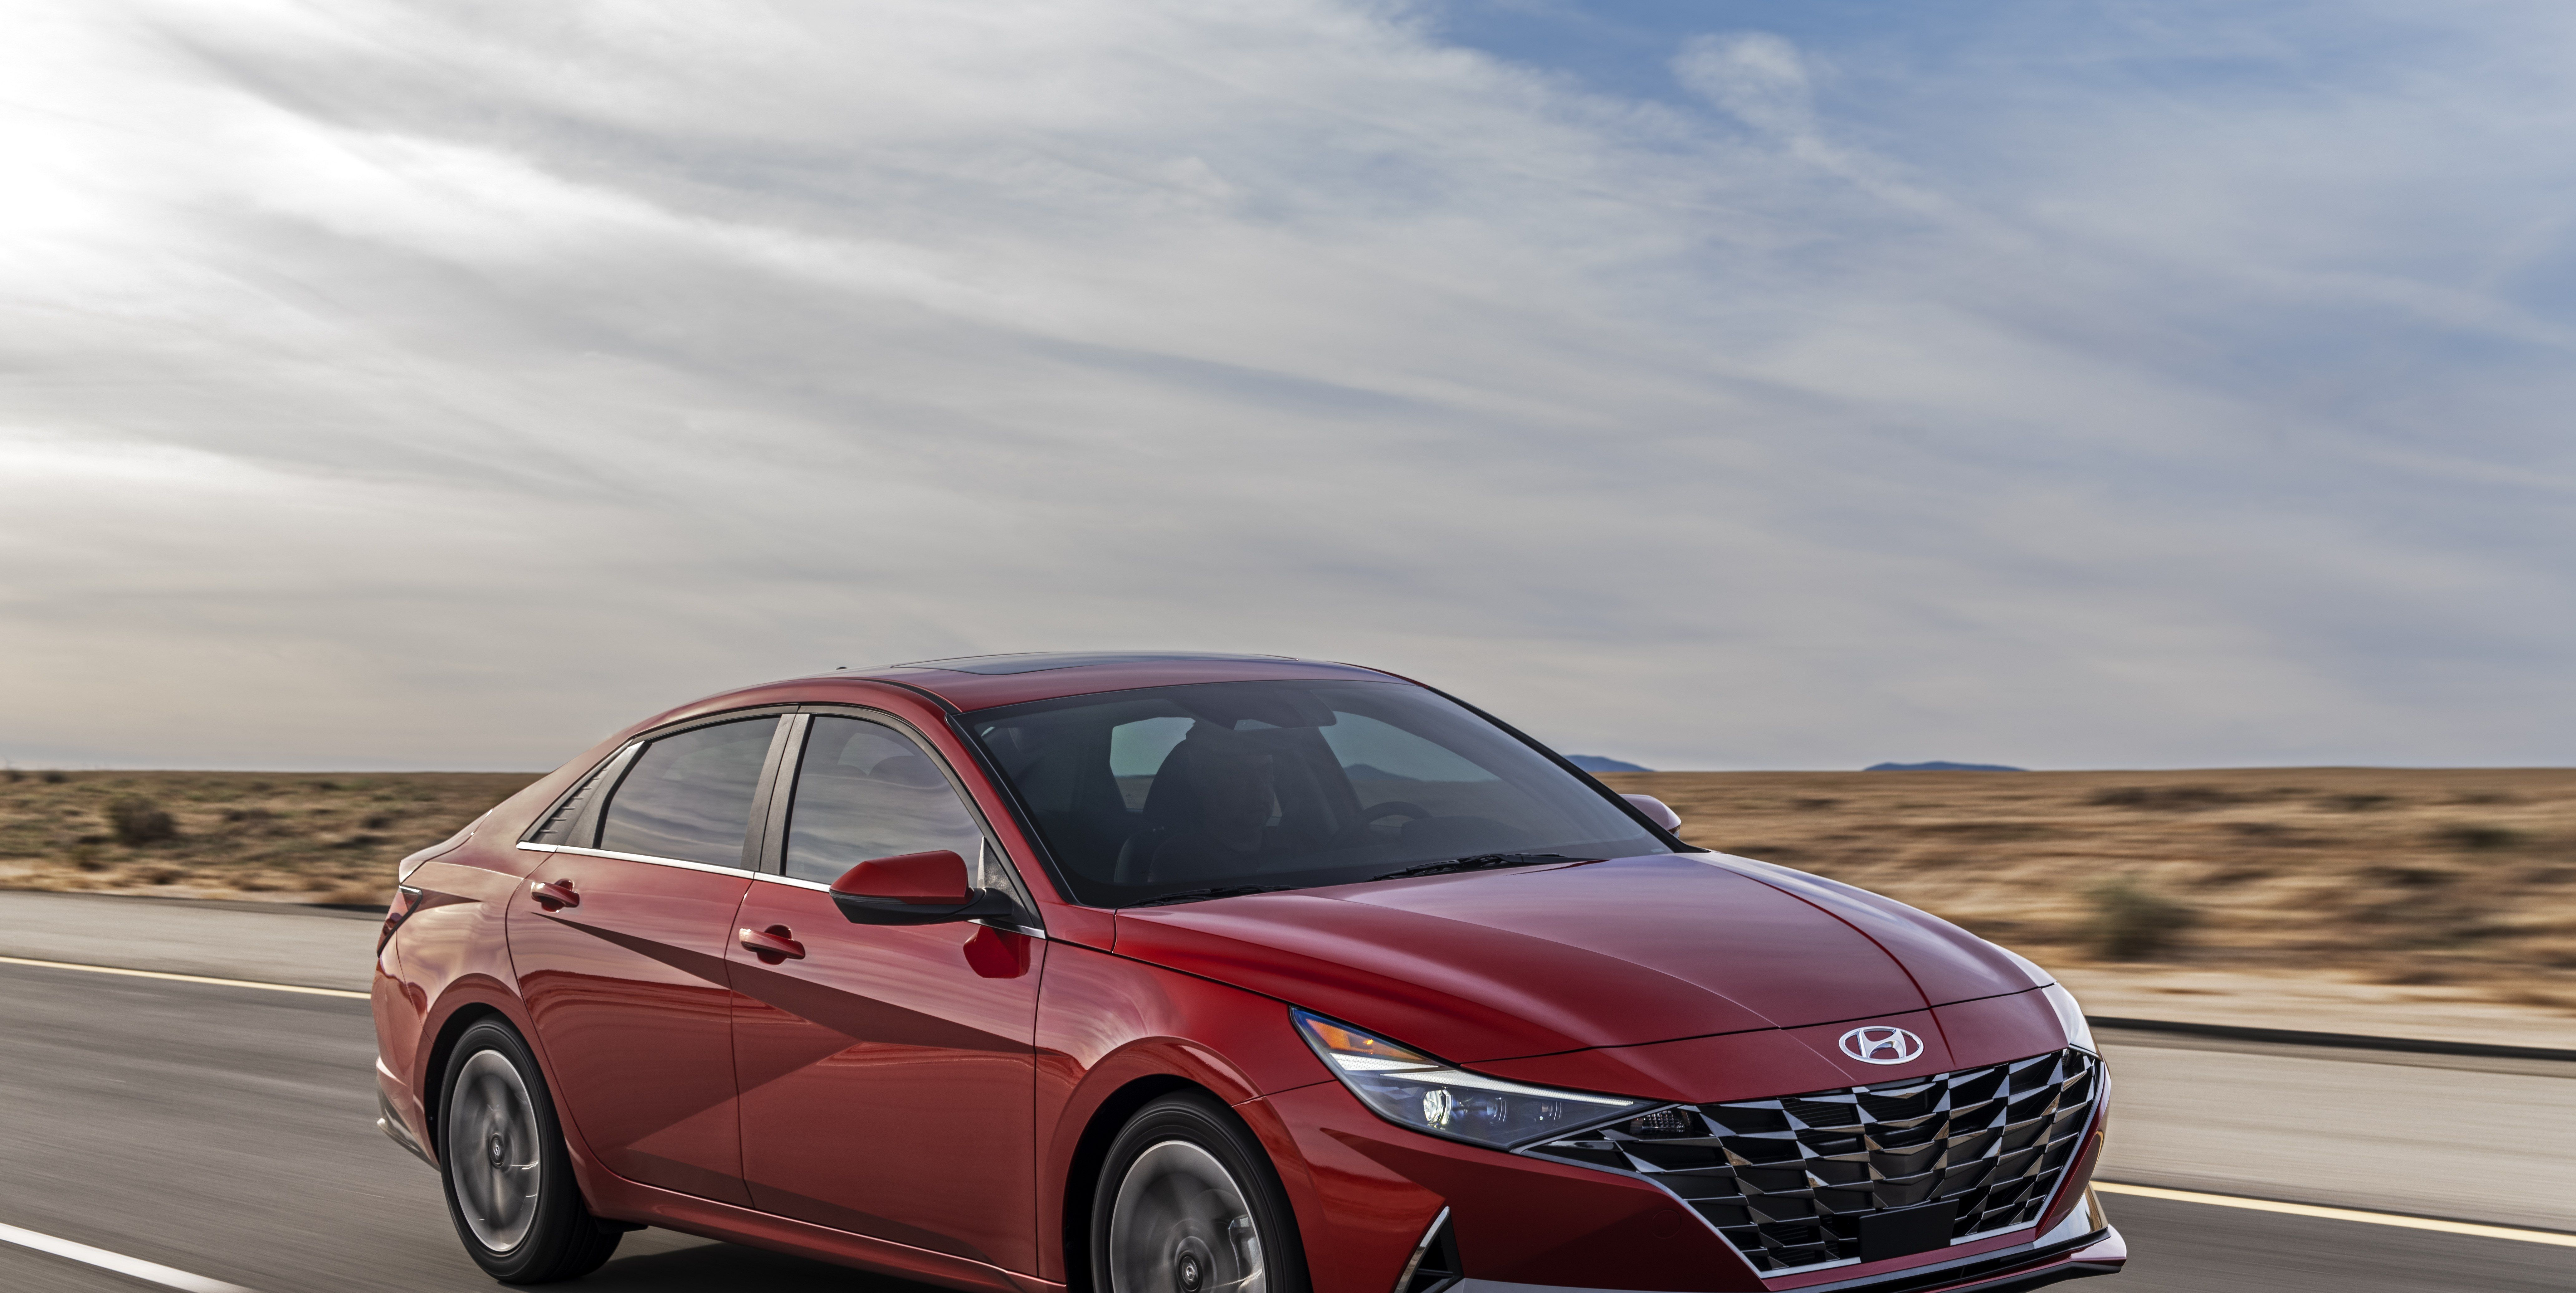 2021 Hyundai Elantra Sedan Looks Good, Adds a Hybrid Version